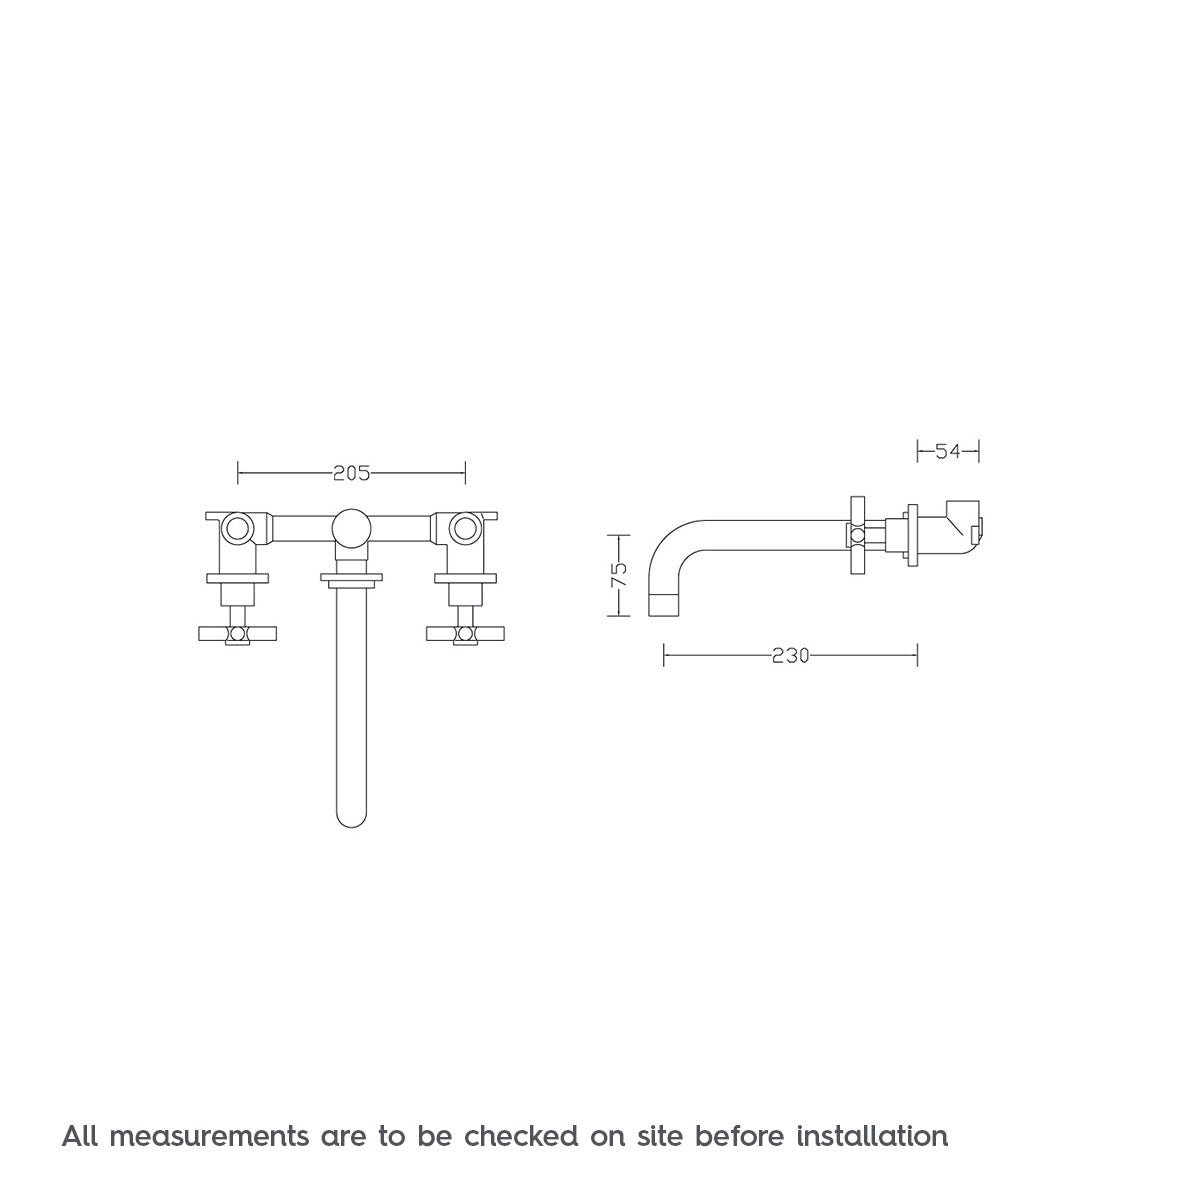 Dimensions for Mode Tate wall mounted bath filler tap